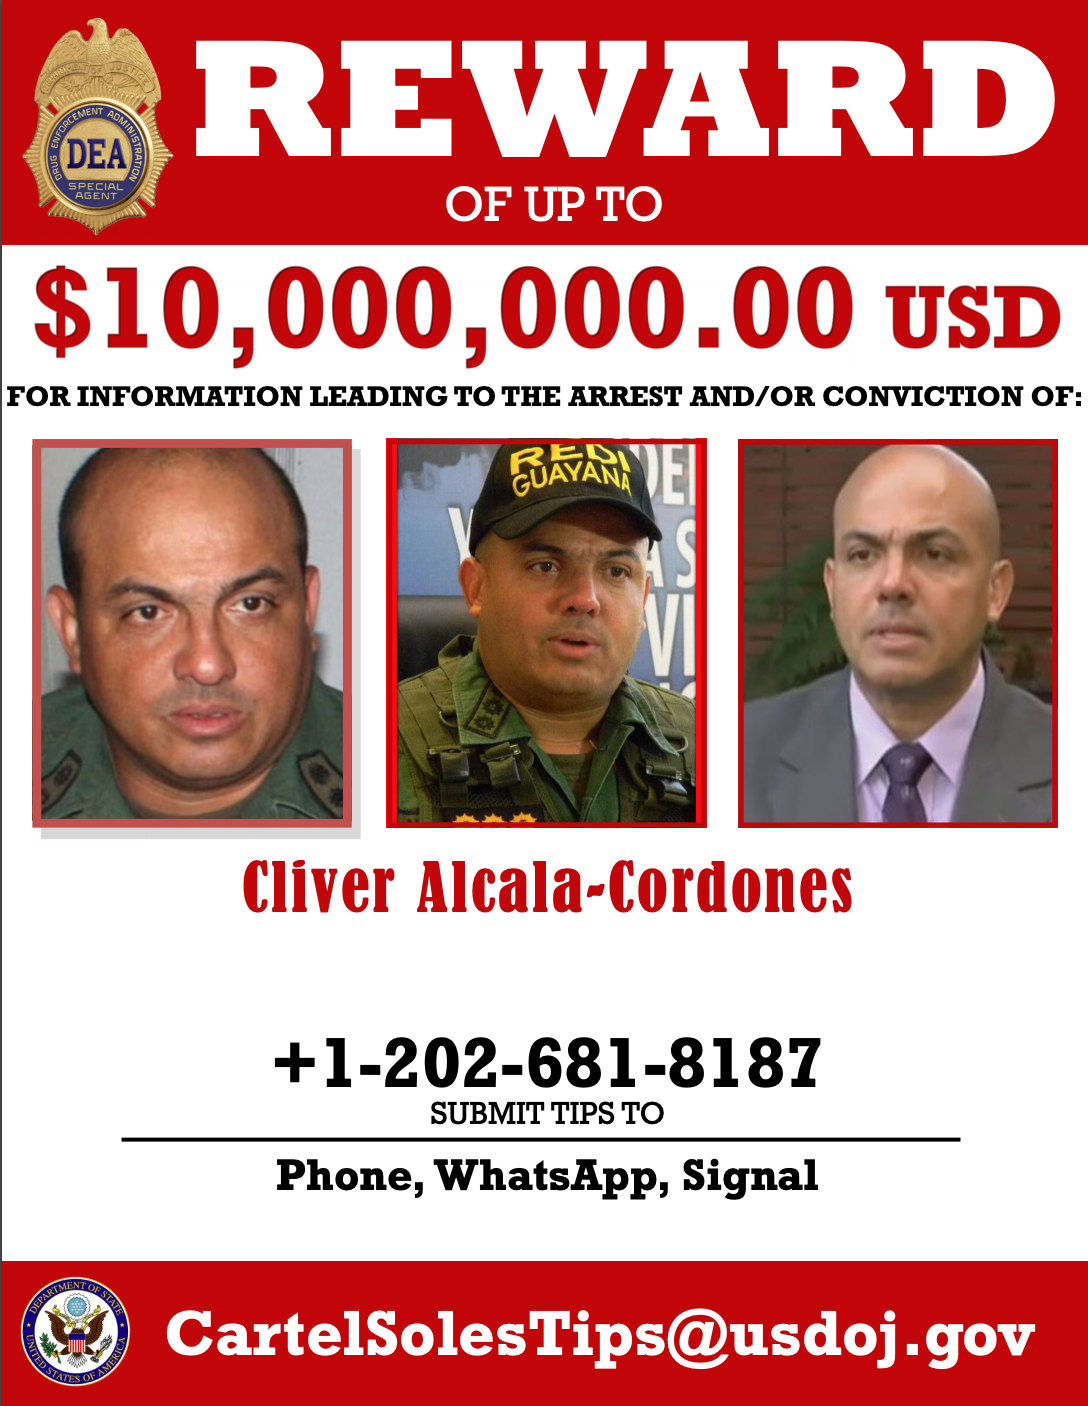 President of Venezuela indicted for narcoterrorism in the U.S, Venezuelans are 'not surprised'